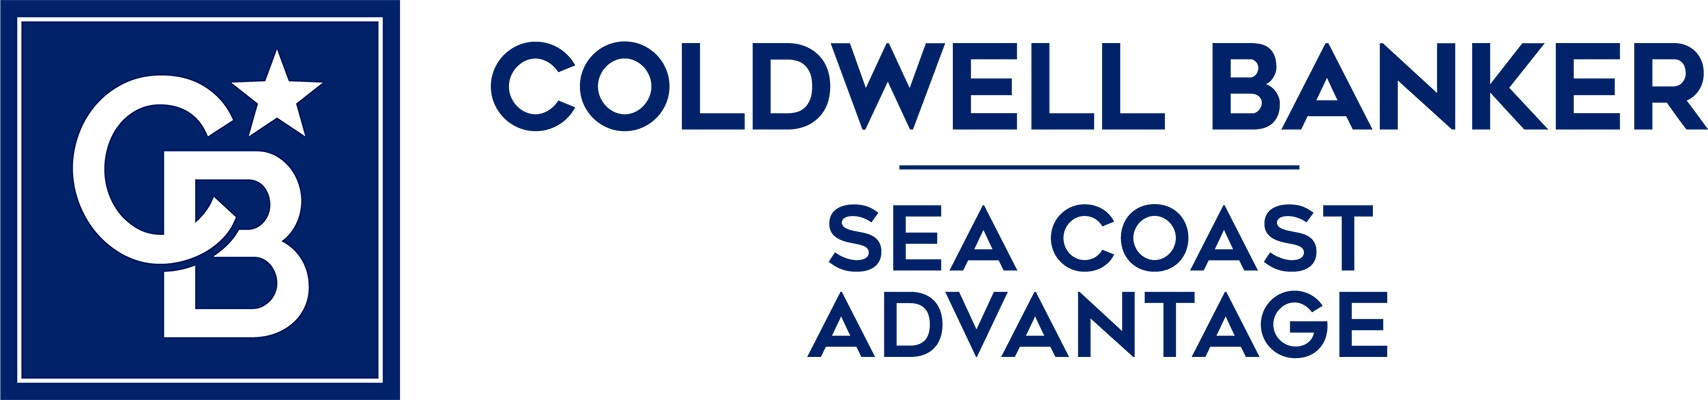 Coldwell Banker Sea Coast Advantage - M+K Real Estate